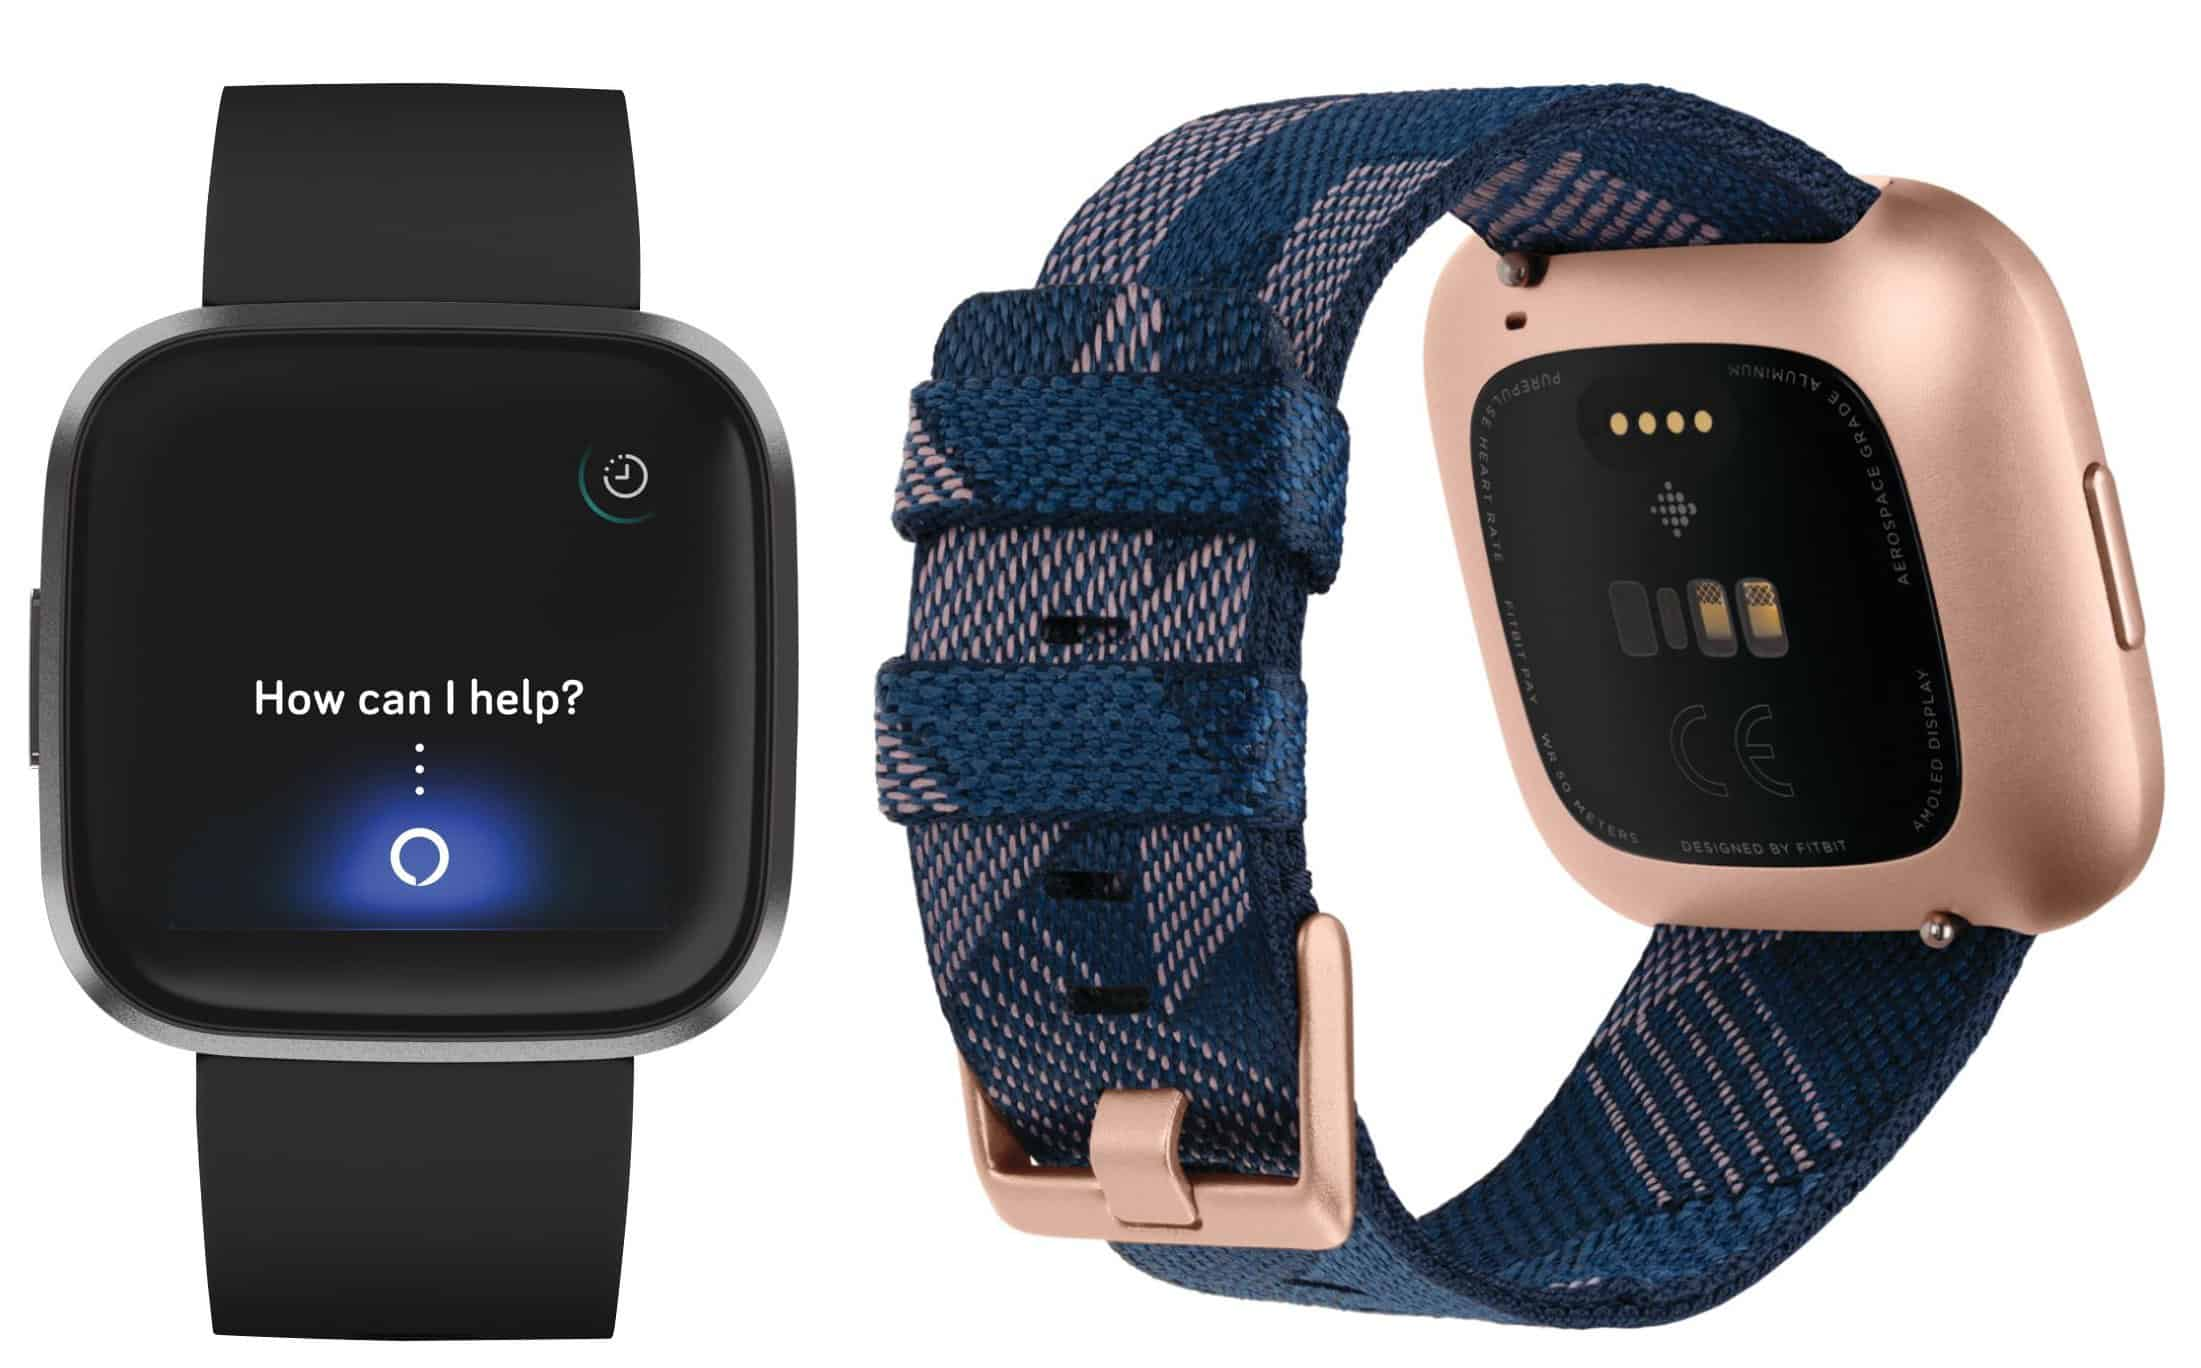 Fitbit Versa 2 smartwatch announced, pricing starts $200